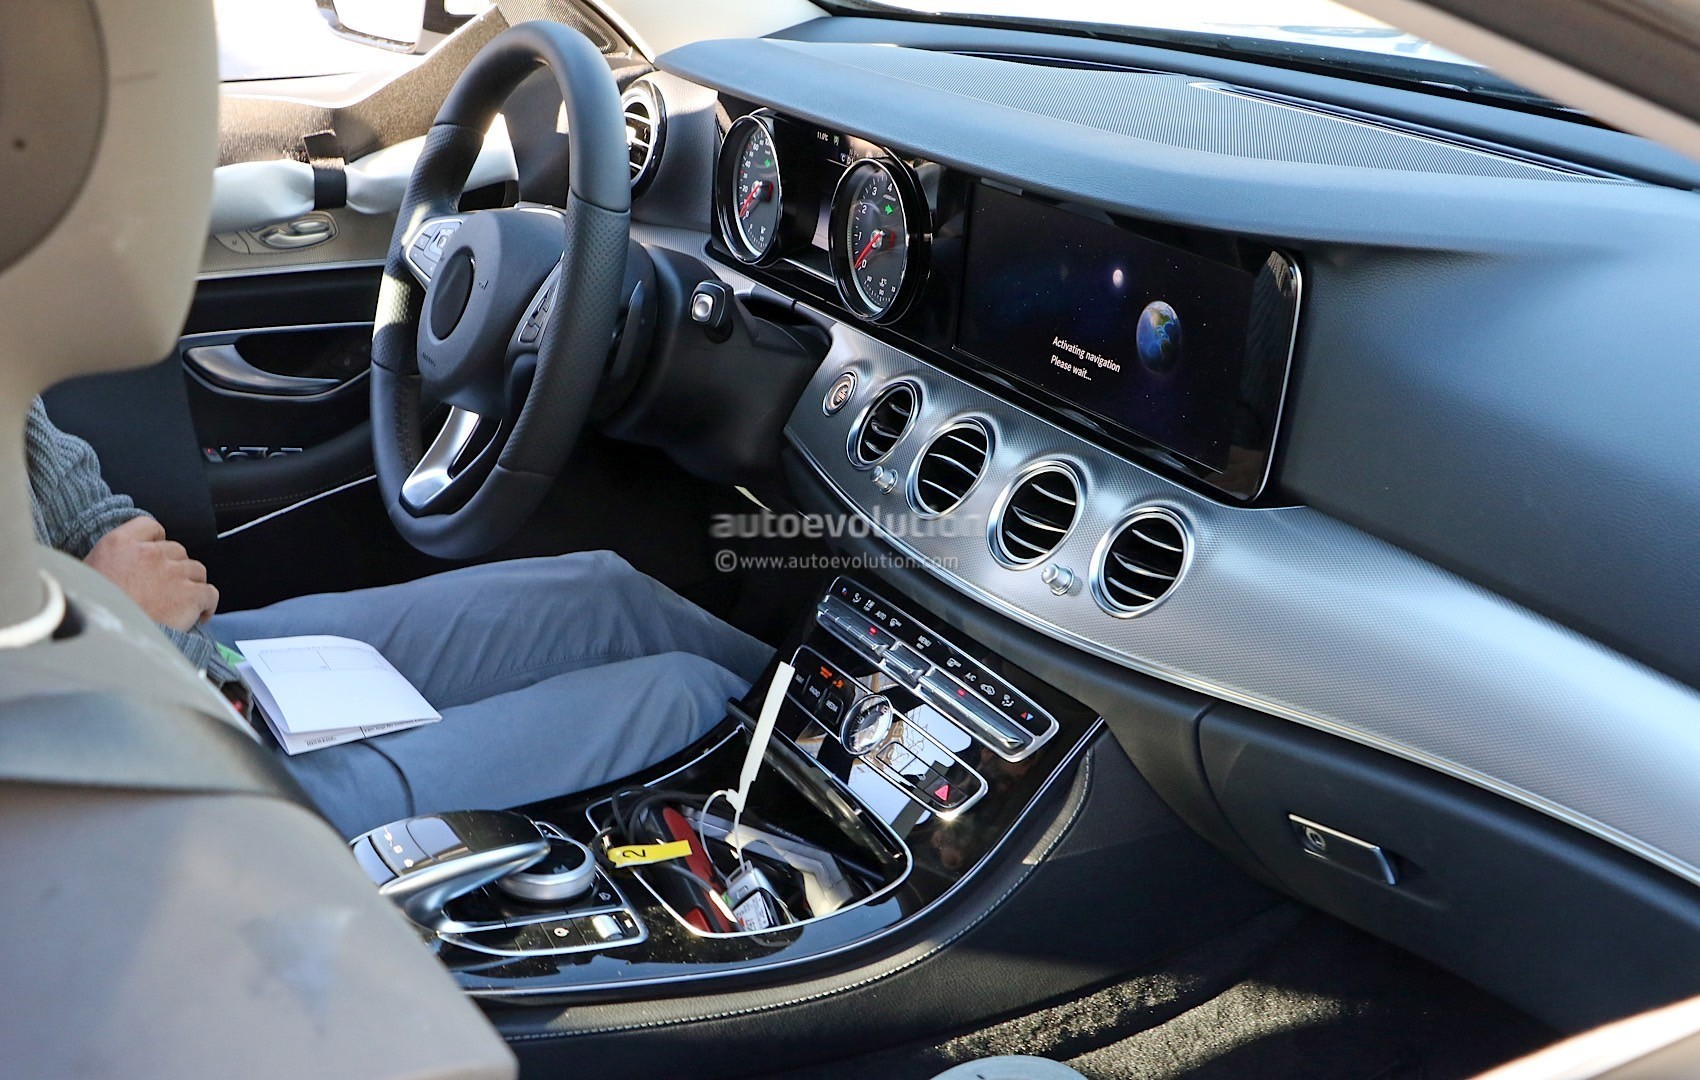 2017 mercedes benz e class interior revealed in latest for Interieur e klasse 2017